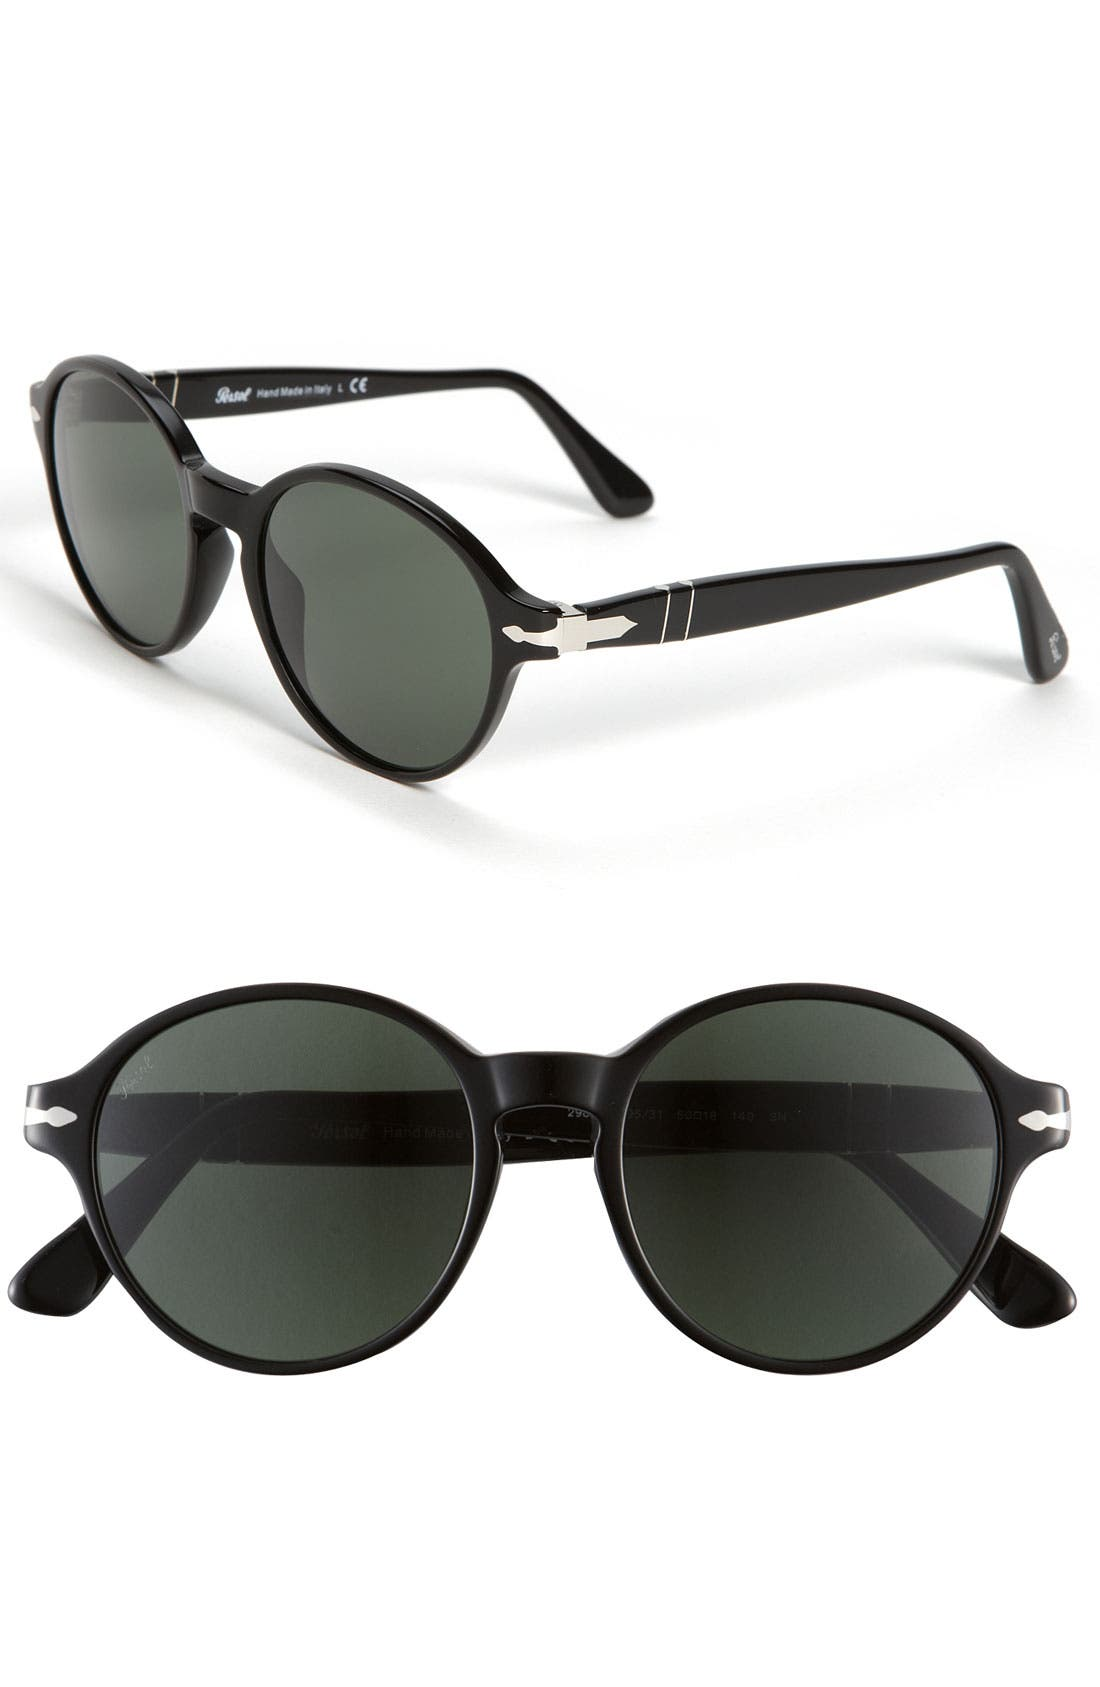 Alternate Image 1 Selected - Persol Vintage Inspired Sunglasses